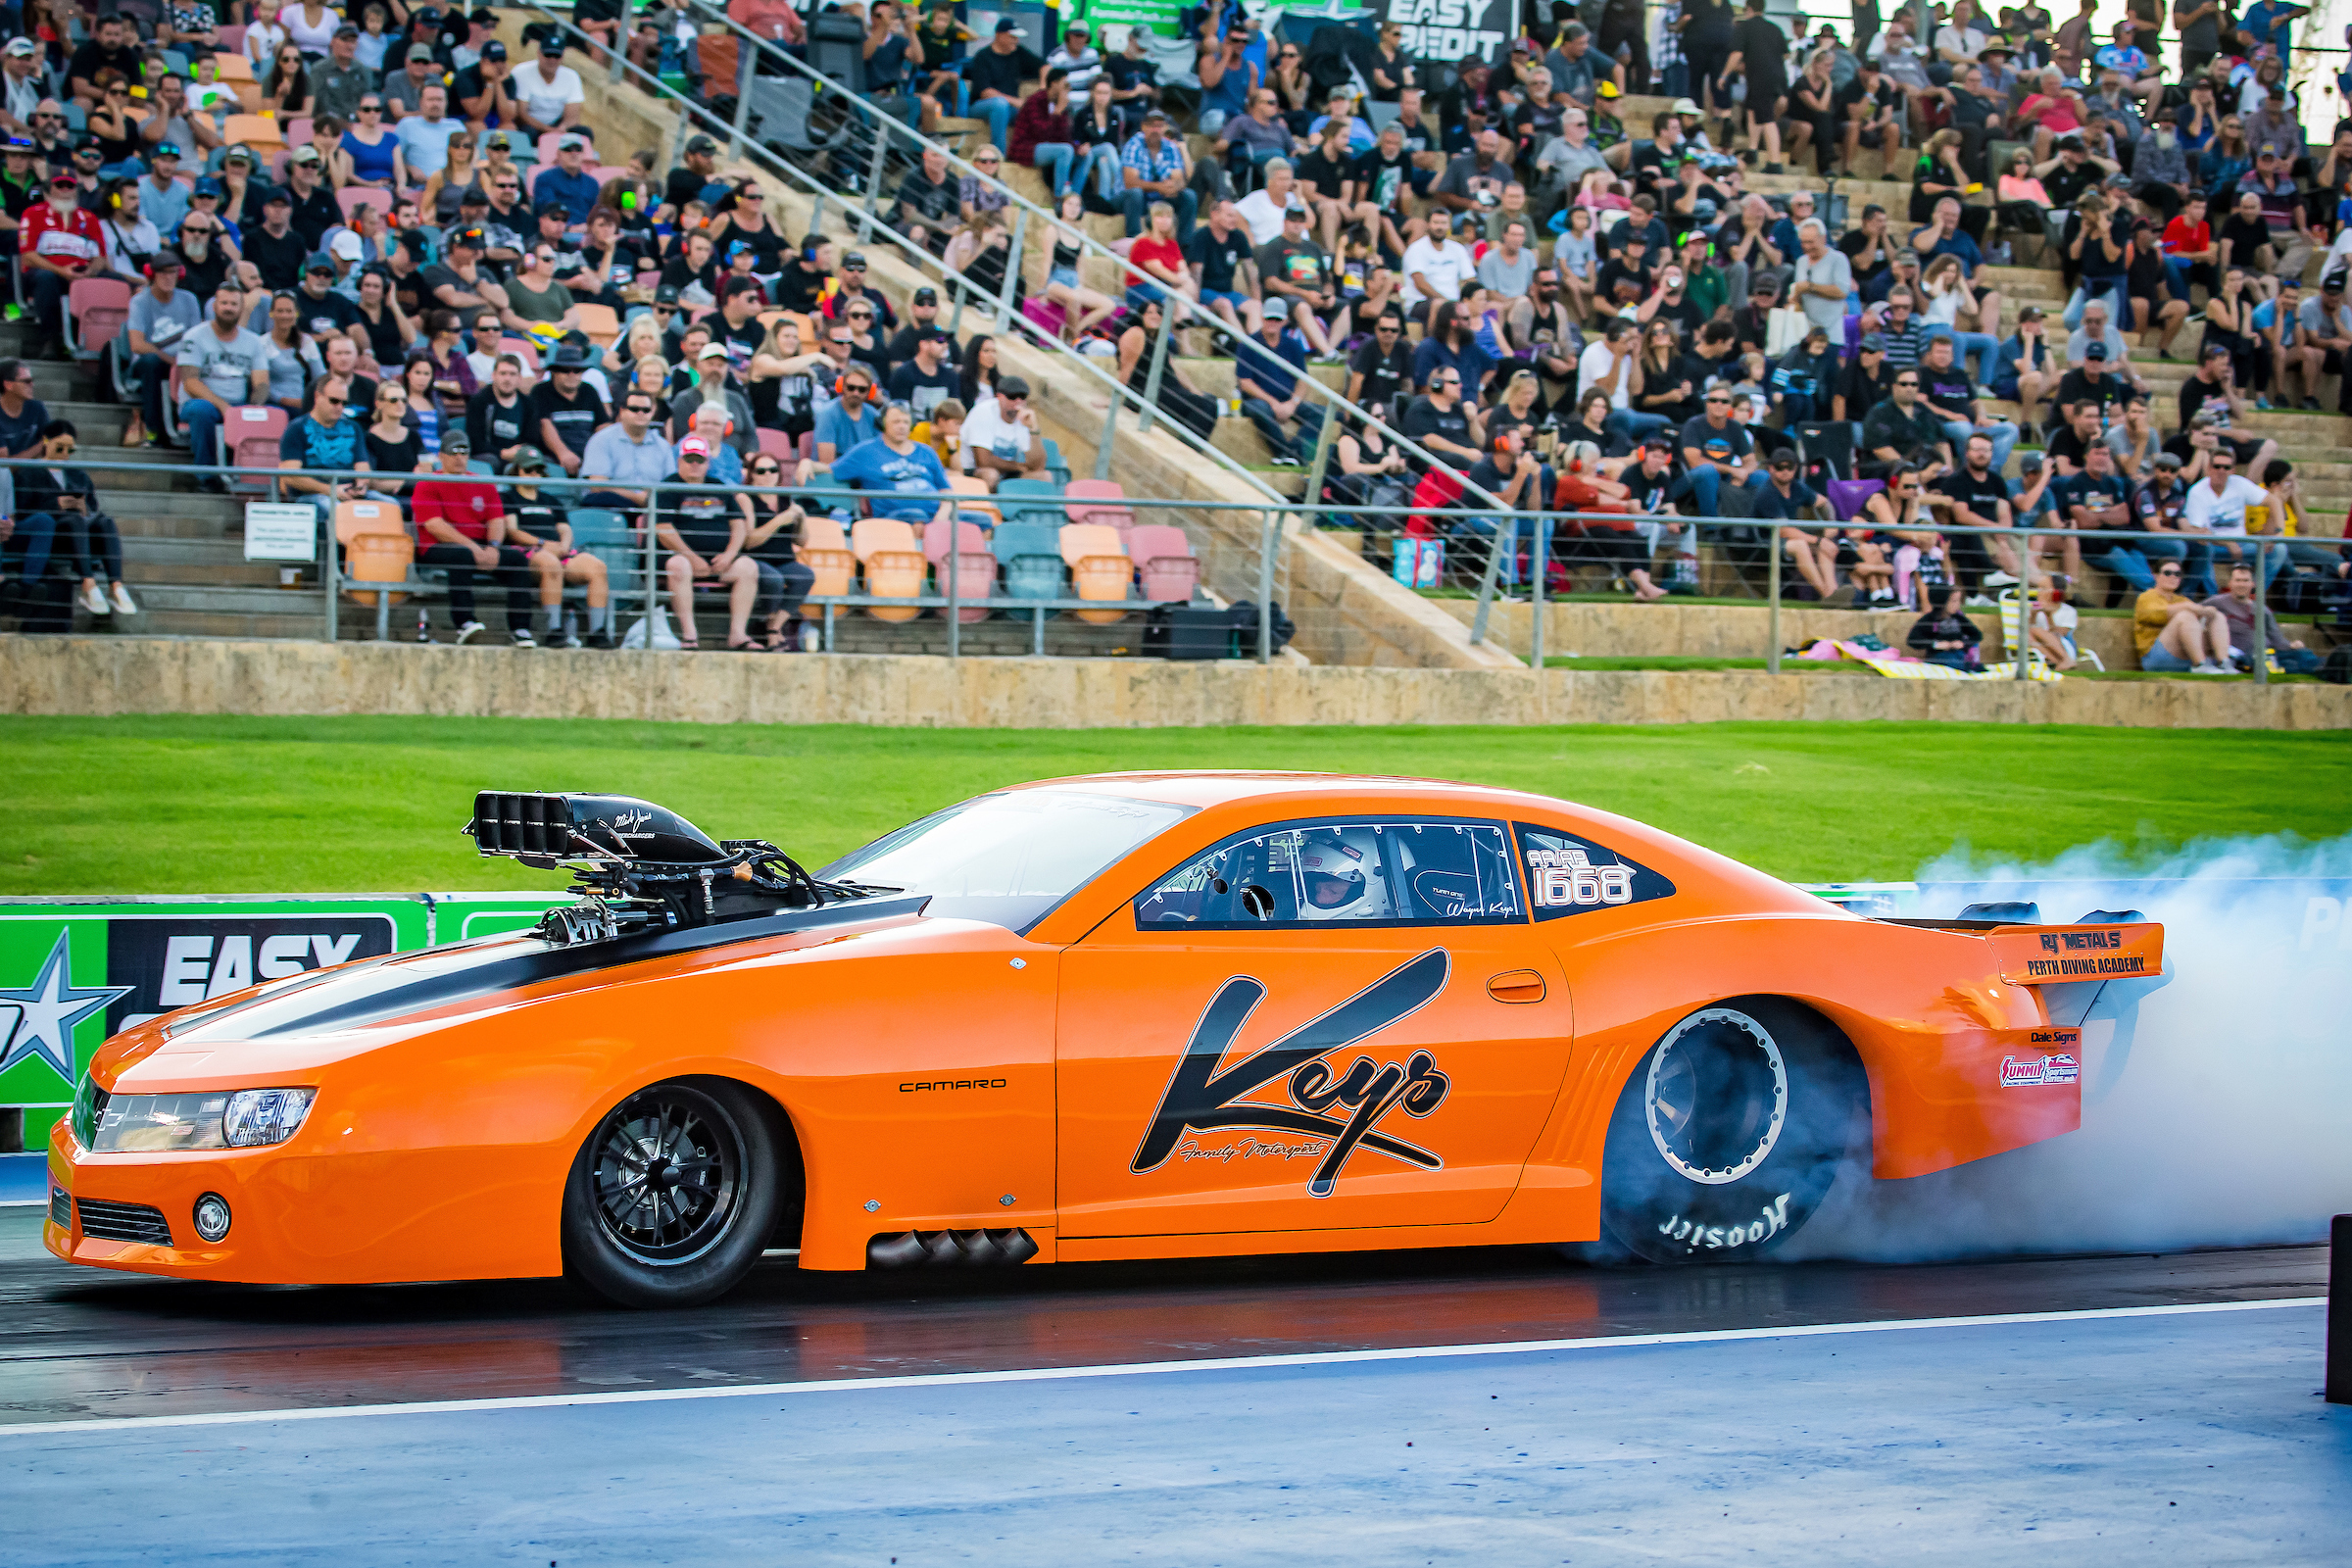 Comp title wide open ahead of Andra Grand Final